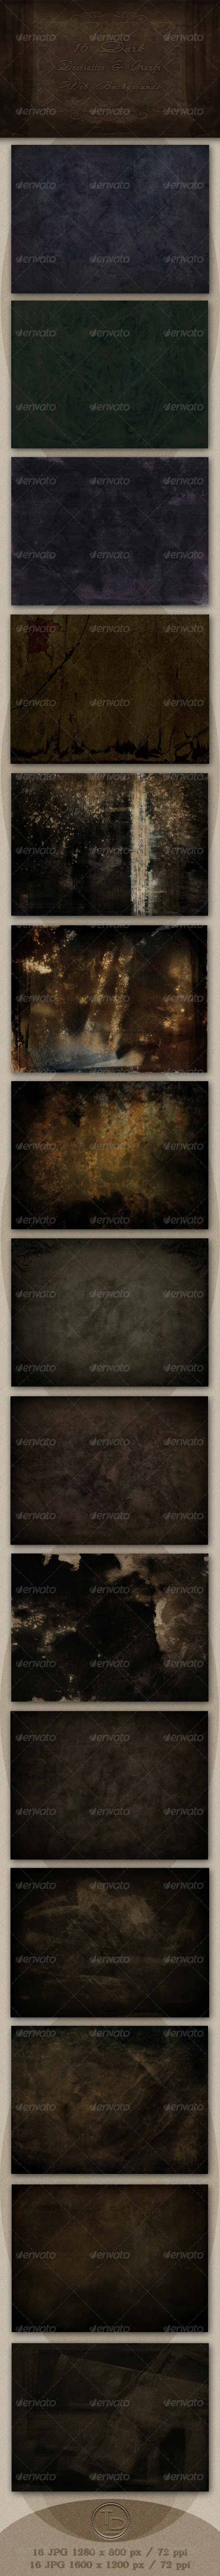 16 Dark Decorative & Grunge Web Backgrounds - Miscellaneous Backgrounds